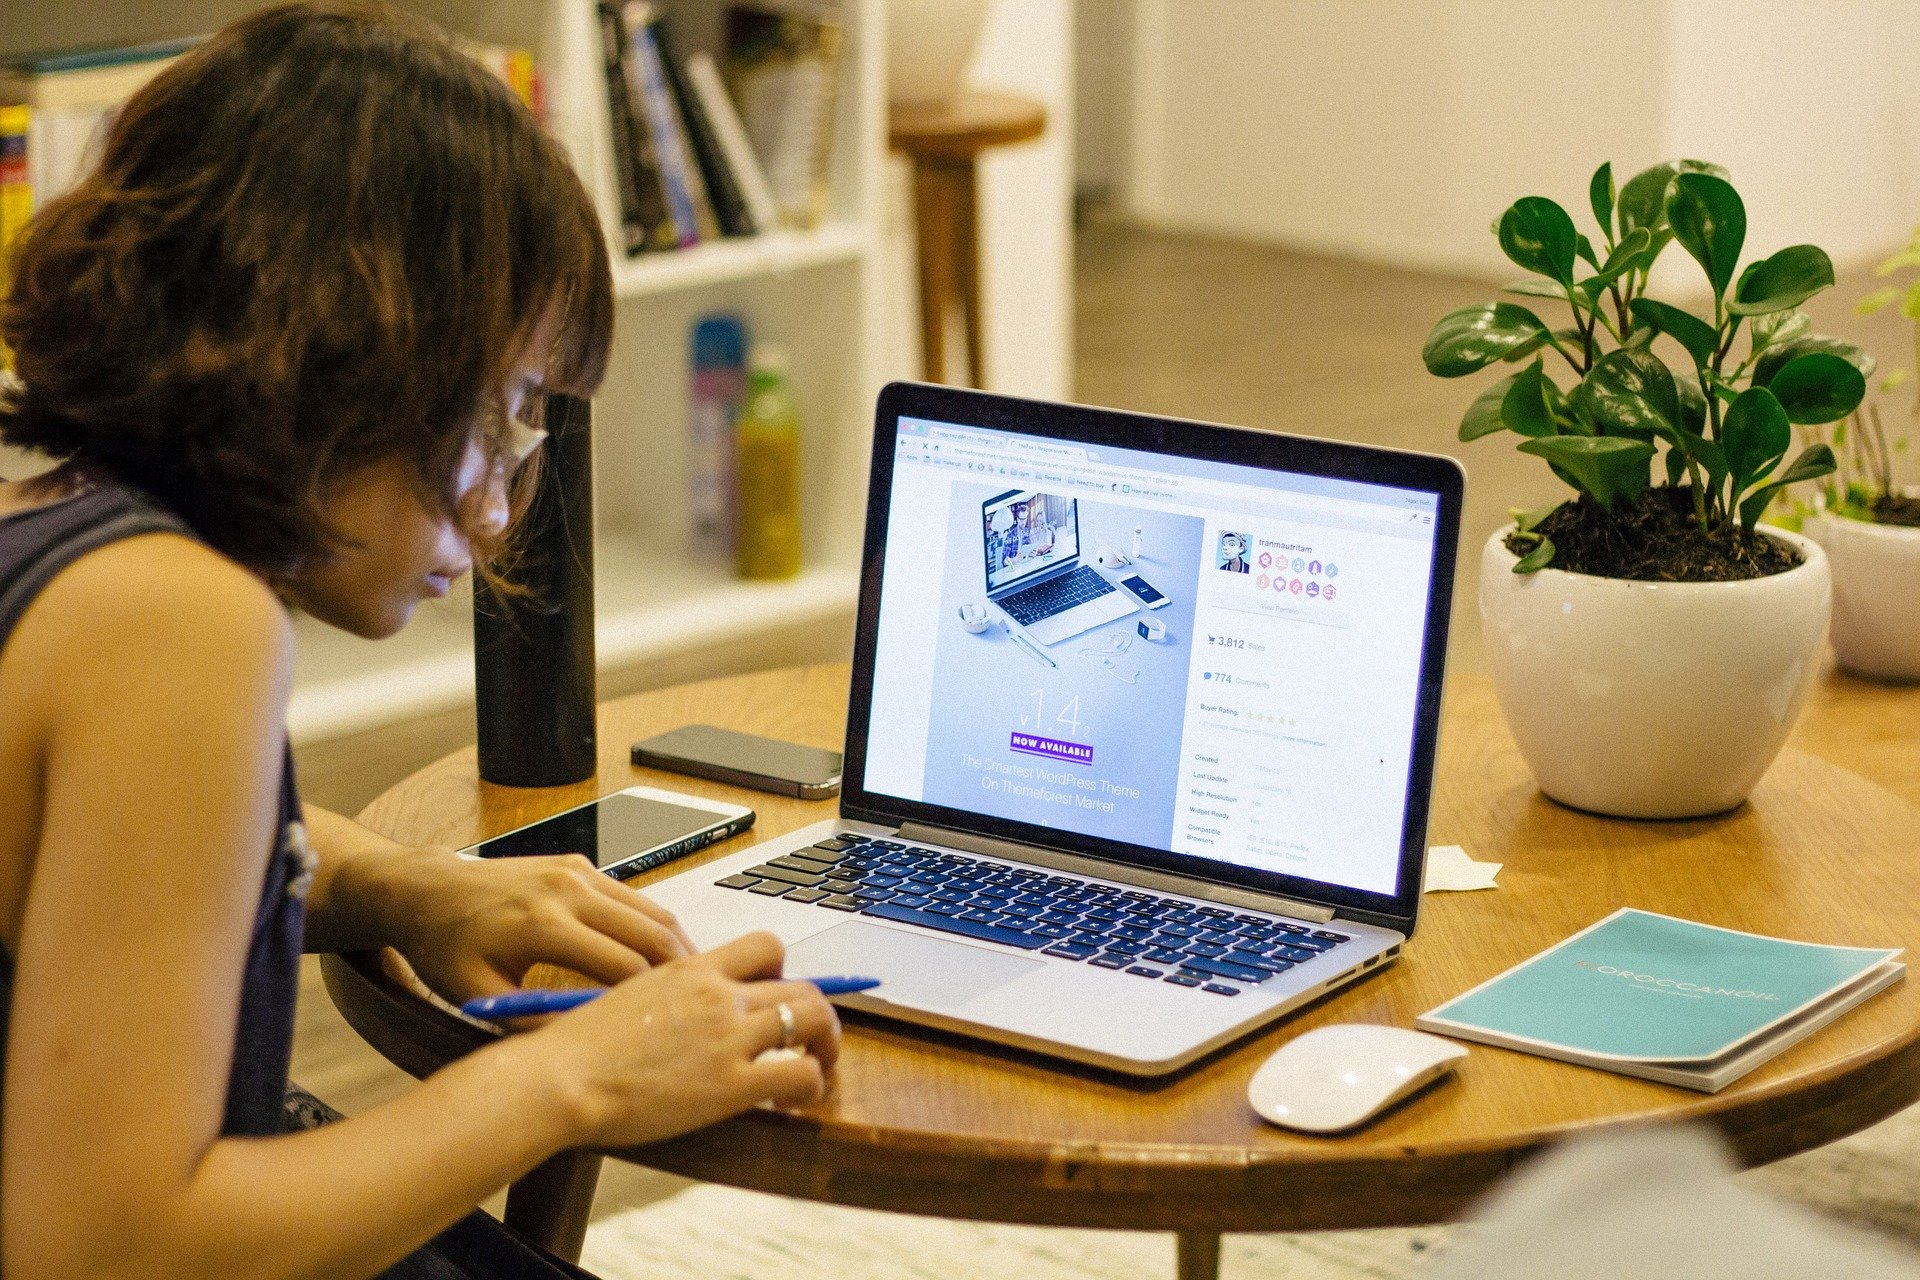 image of woman working on a laptop at a desk